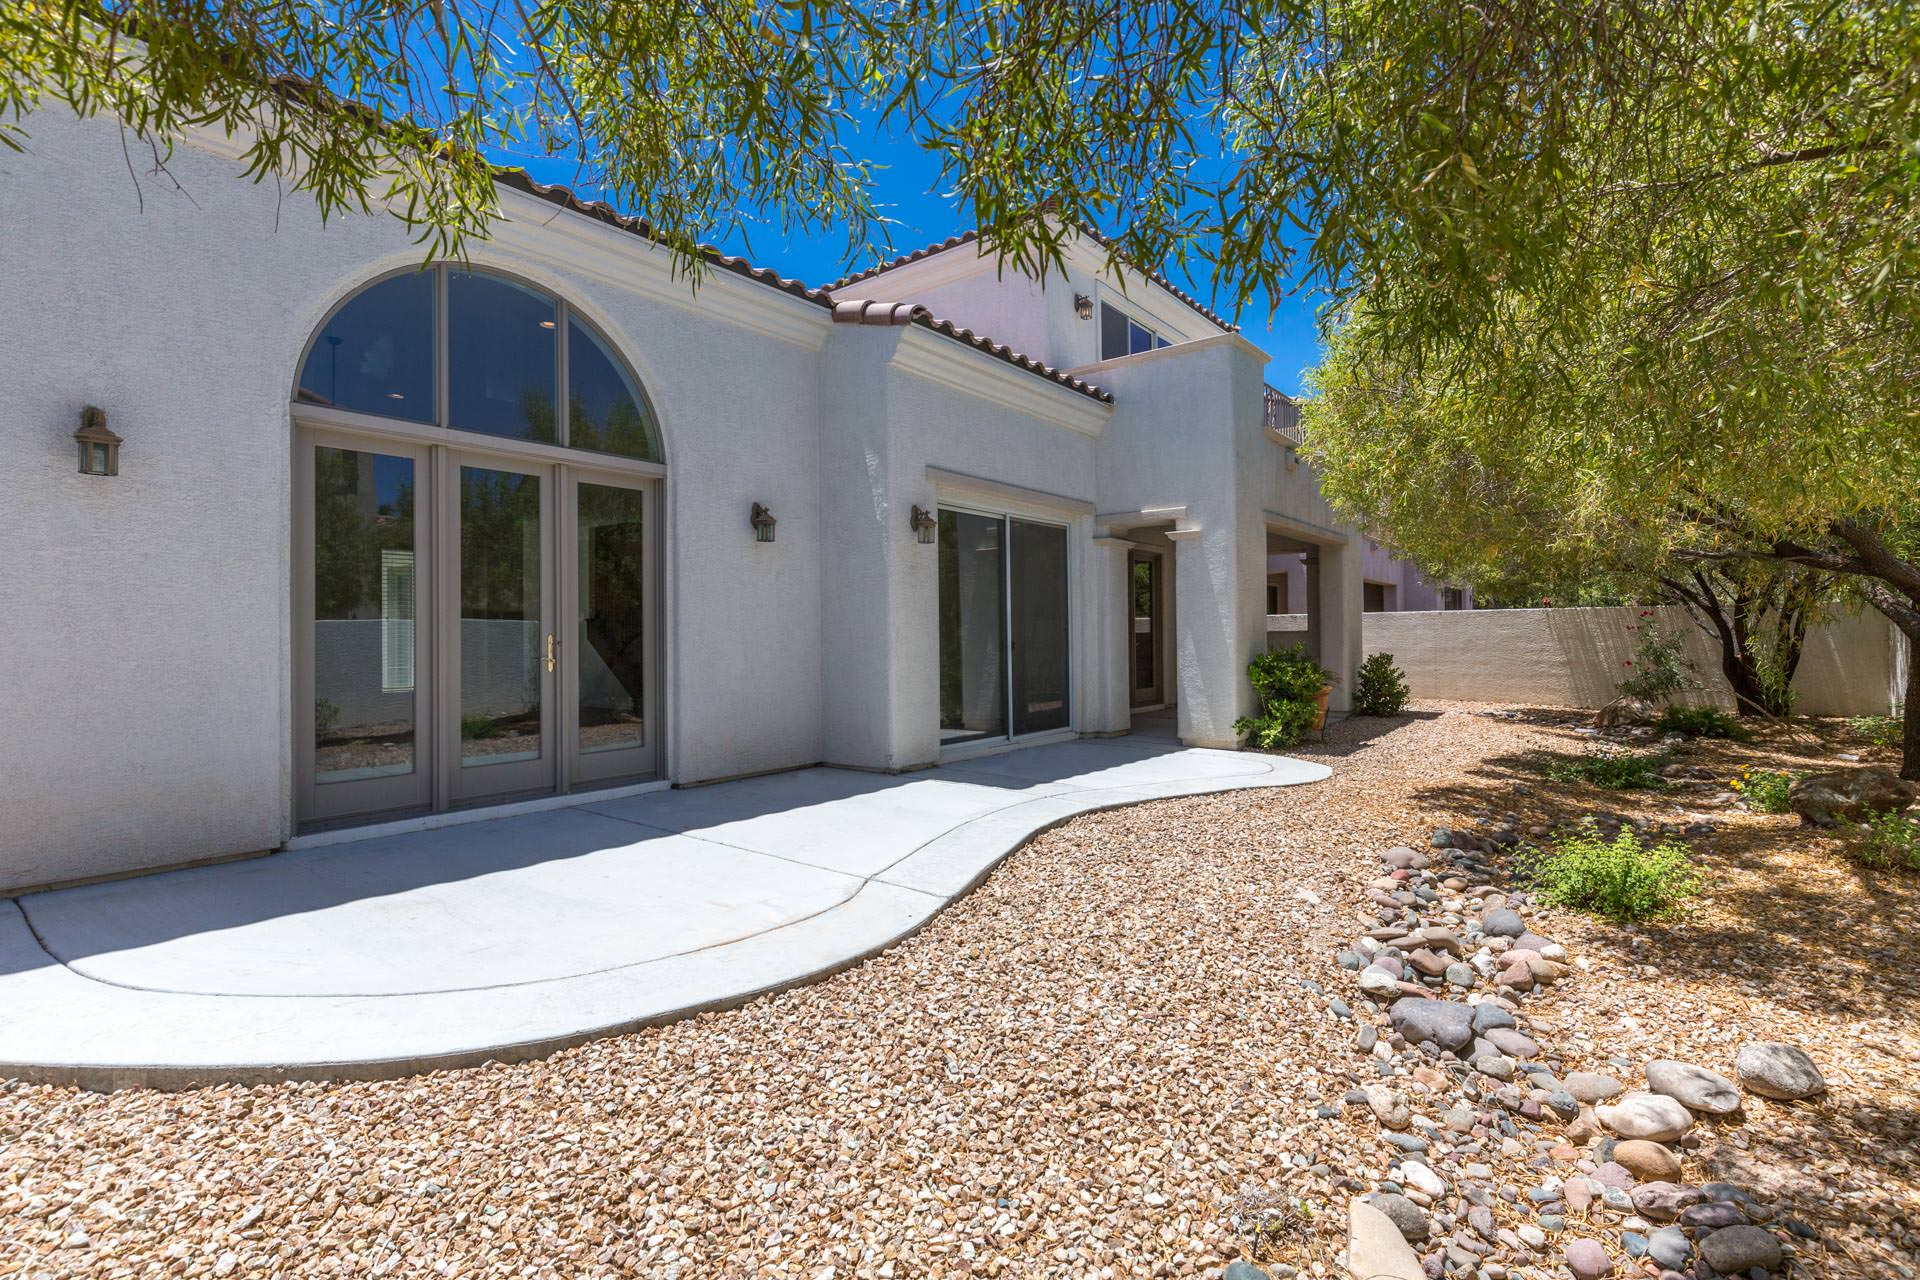 Homes For Sale With Kitchen Casita Las Vegas